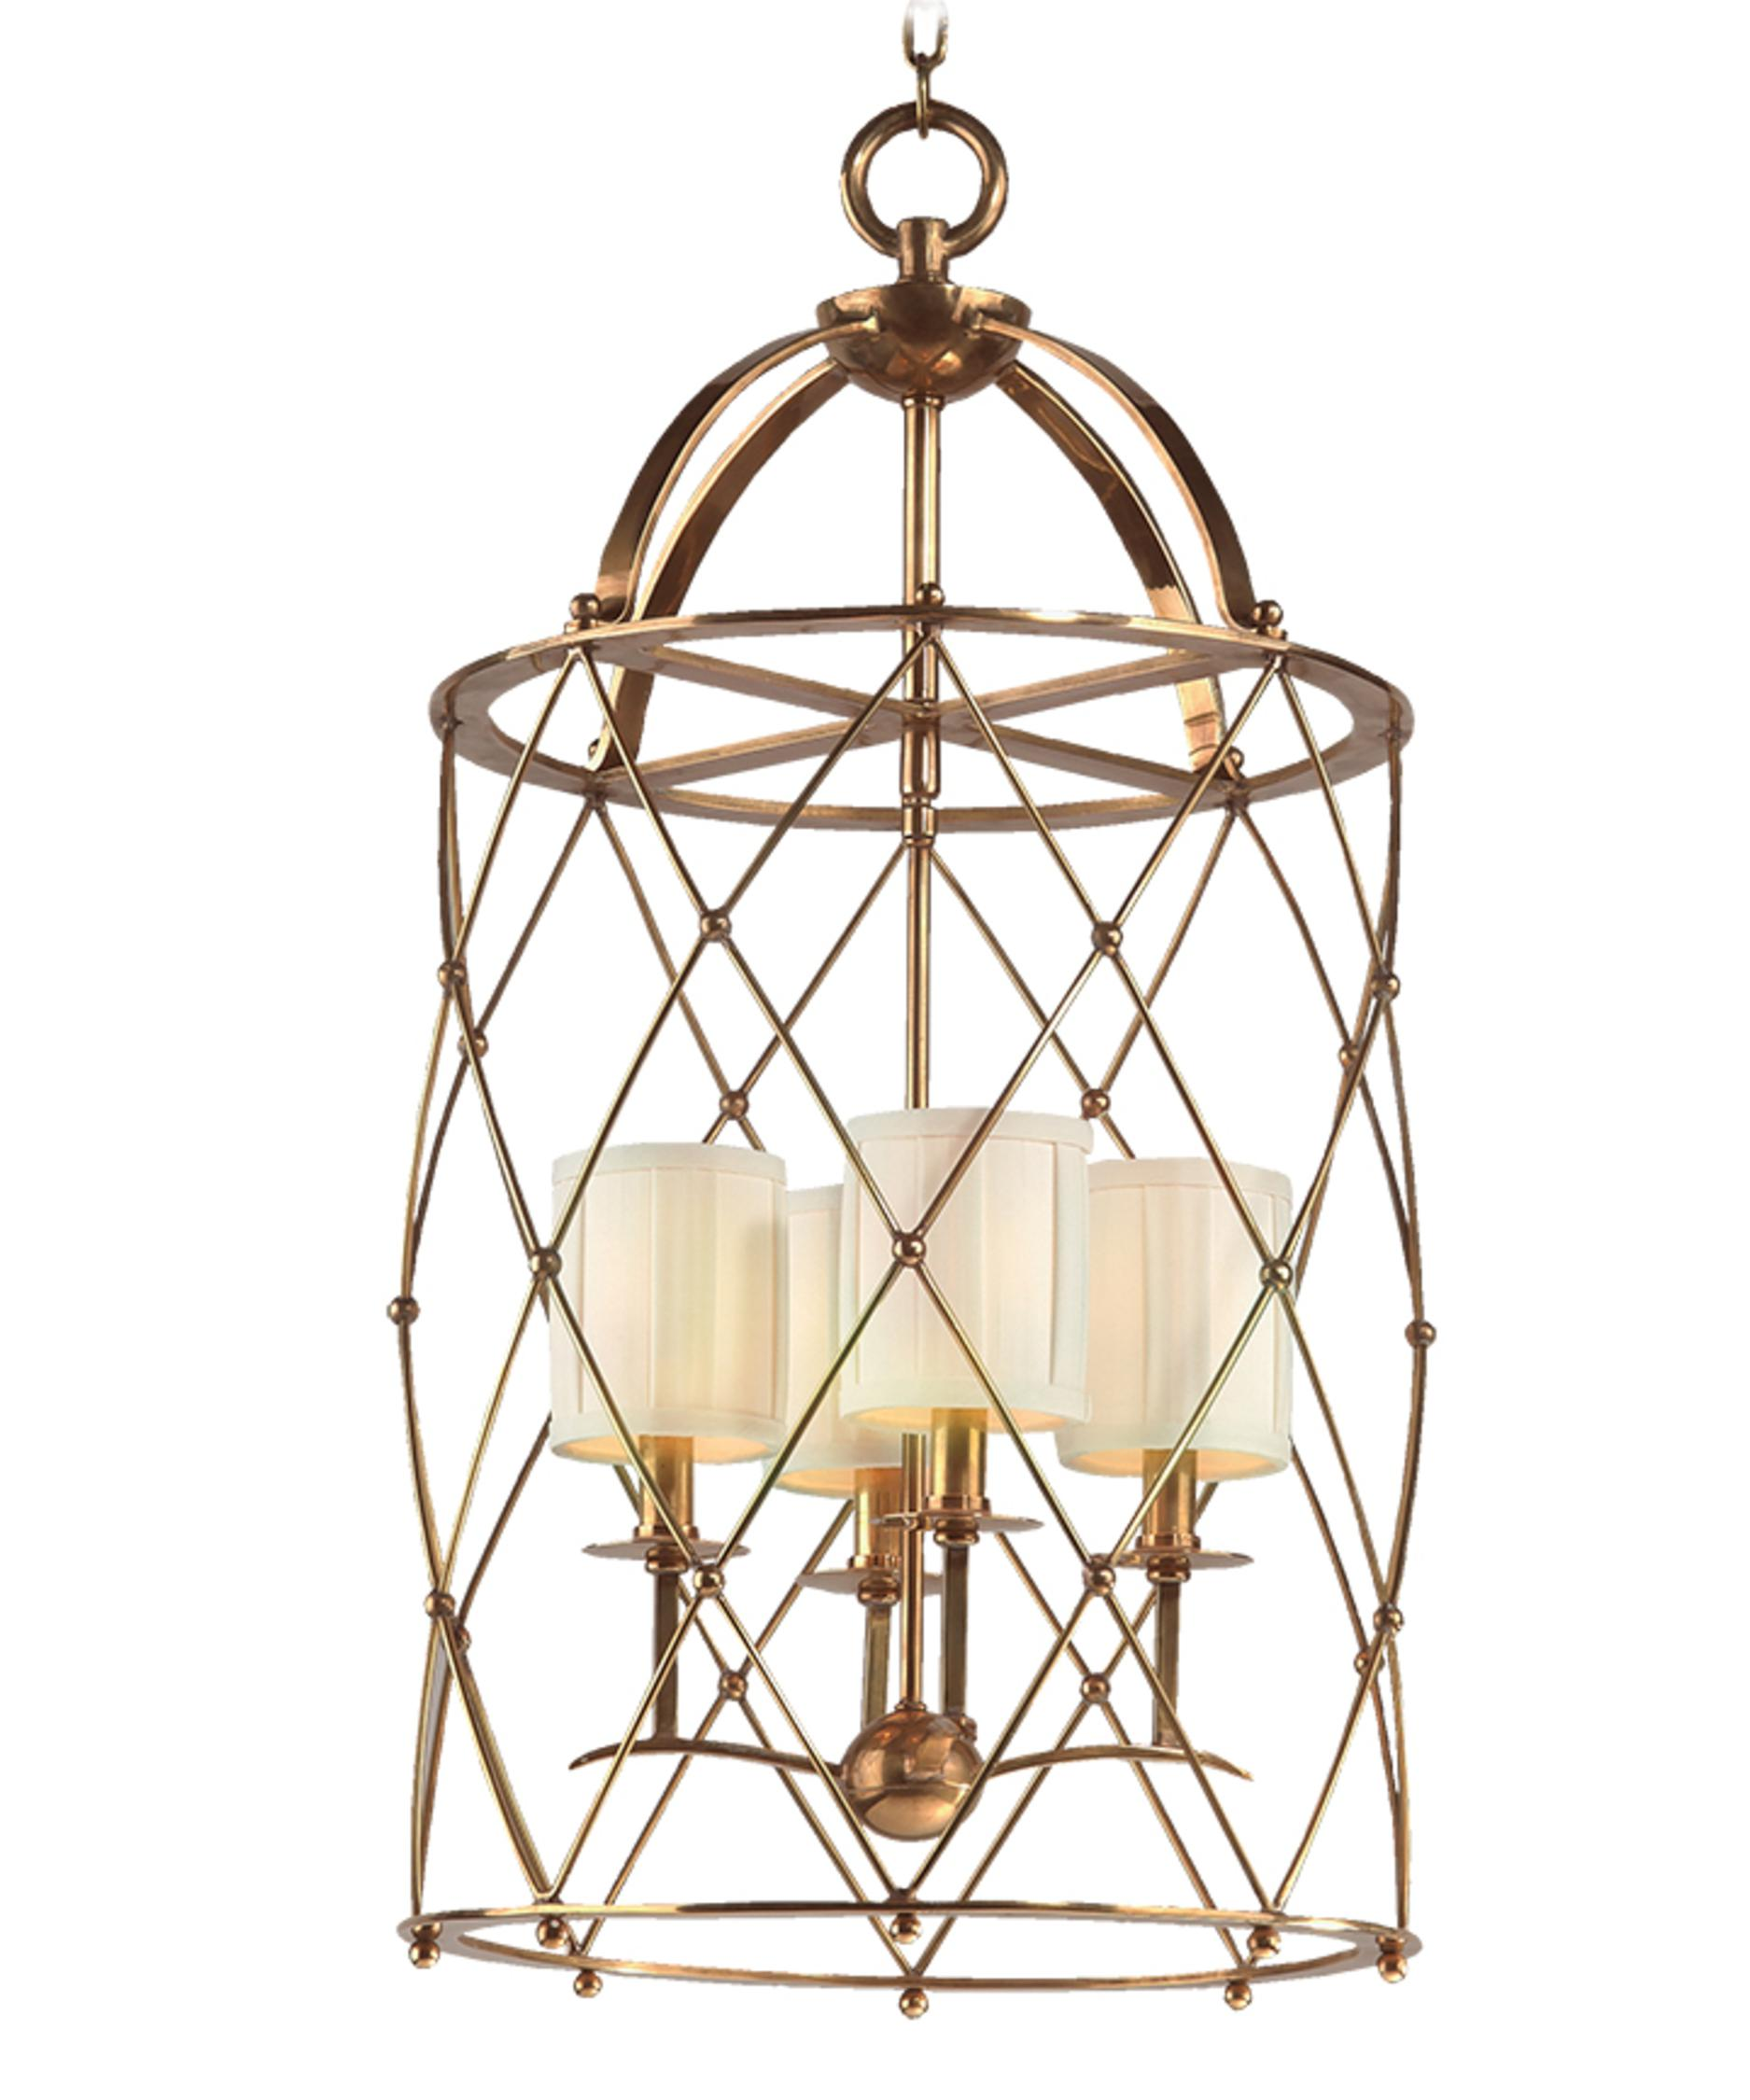 shown in aged brass finish and box pleat shade shade - Corbett Lighting